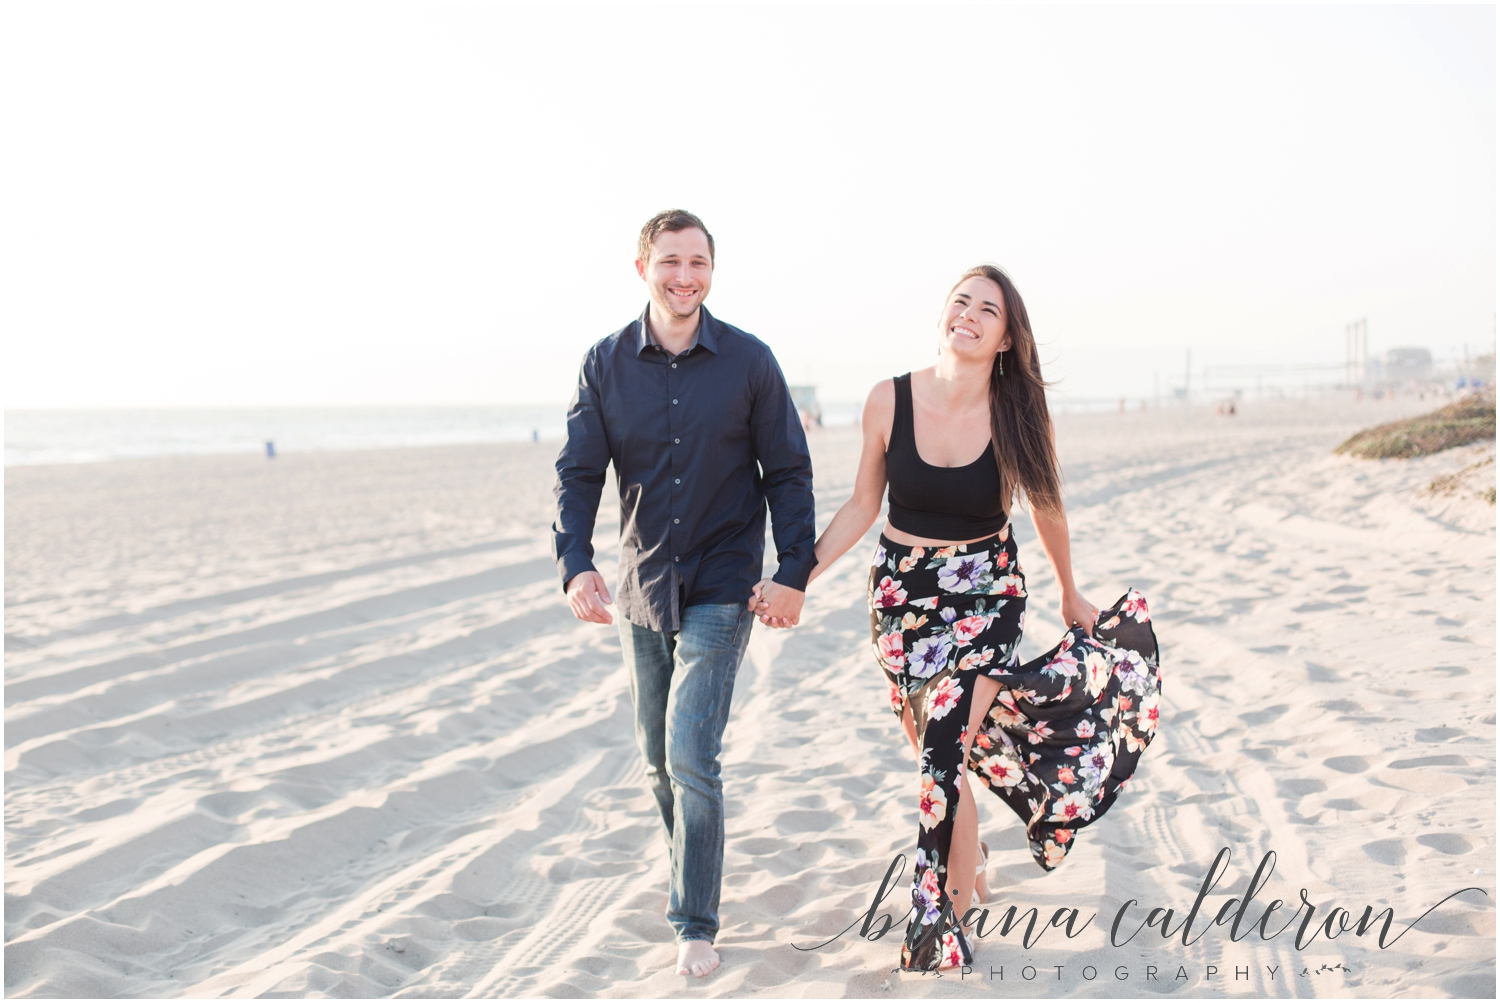 LA Beach Engagement Photos by Briana Calderon Photography_0807.jpg